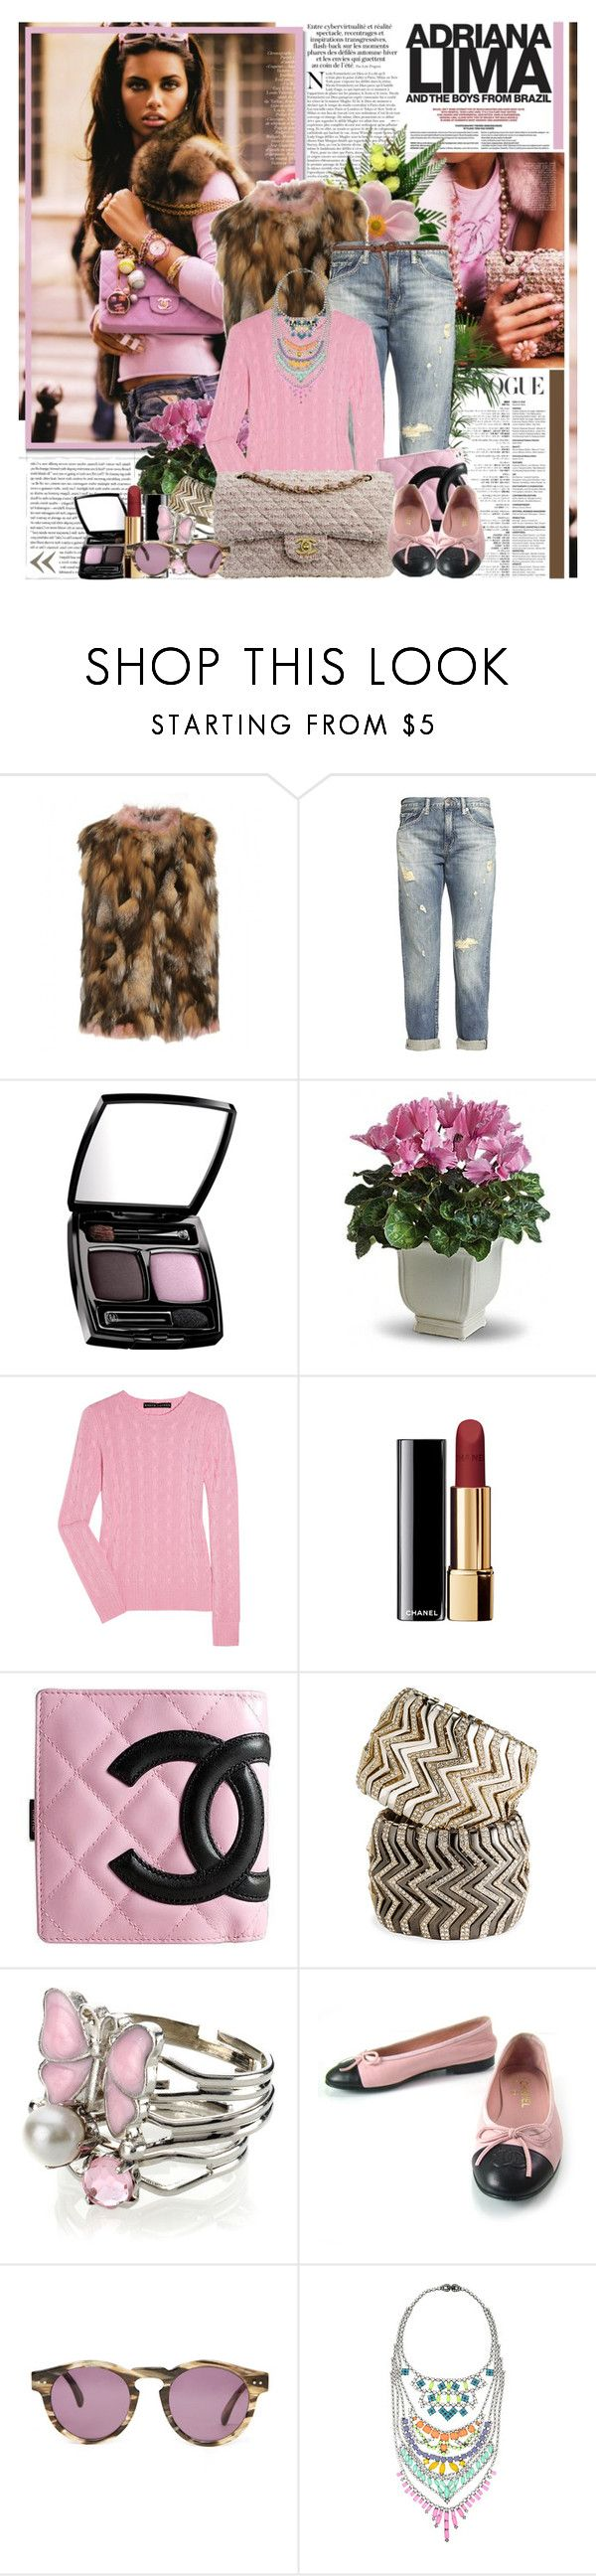 """? Adriana Lima ?"" by misssophie ❤ liked on Polyvore featuring Miu Miu, Denim & Supply by Ralph Lauren, Chanel, PLANT, Ralph Lauren Black Label, Cara Accessories, Monsoon, Illesteva and Tom Binns"